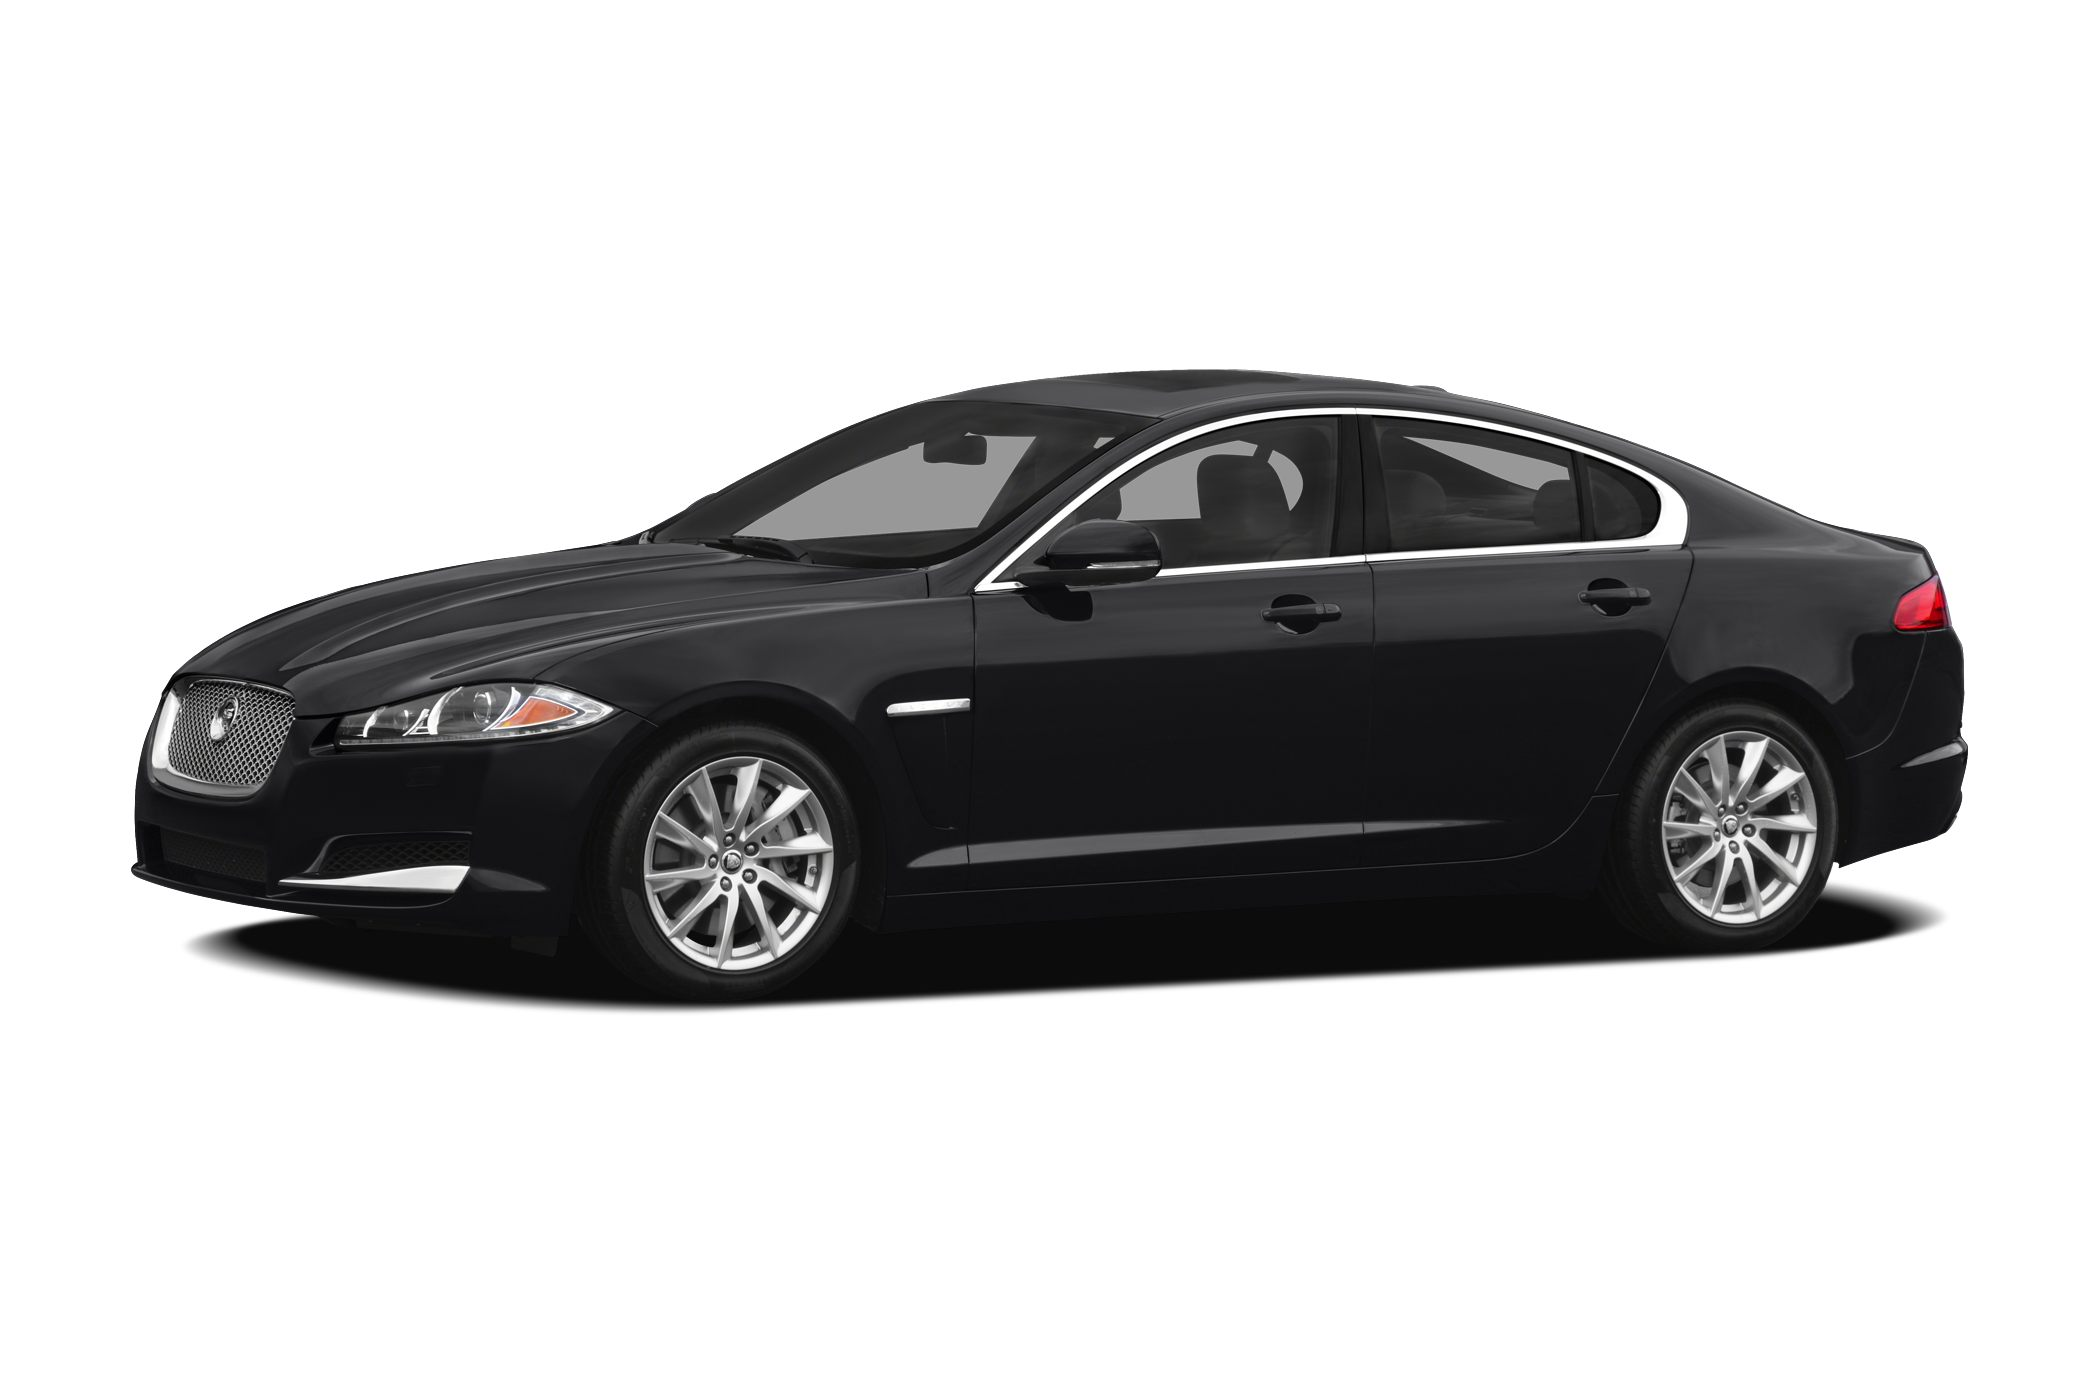 2012 Jaguar XF Portfolio Sedan for sale in Memphis for $45,988 with 29,094 miles.